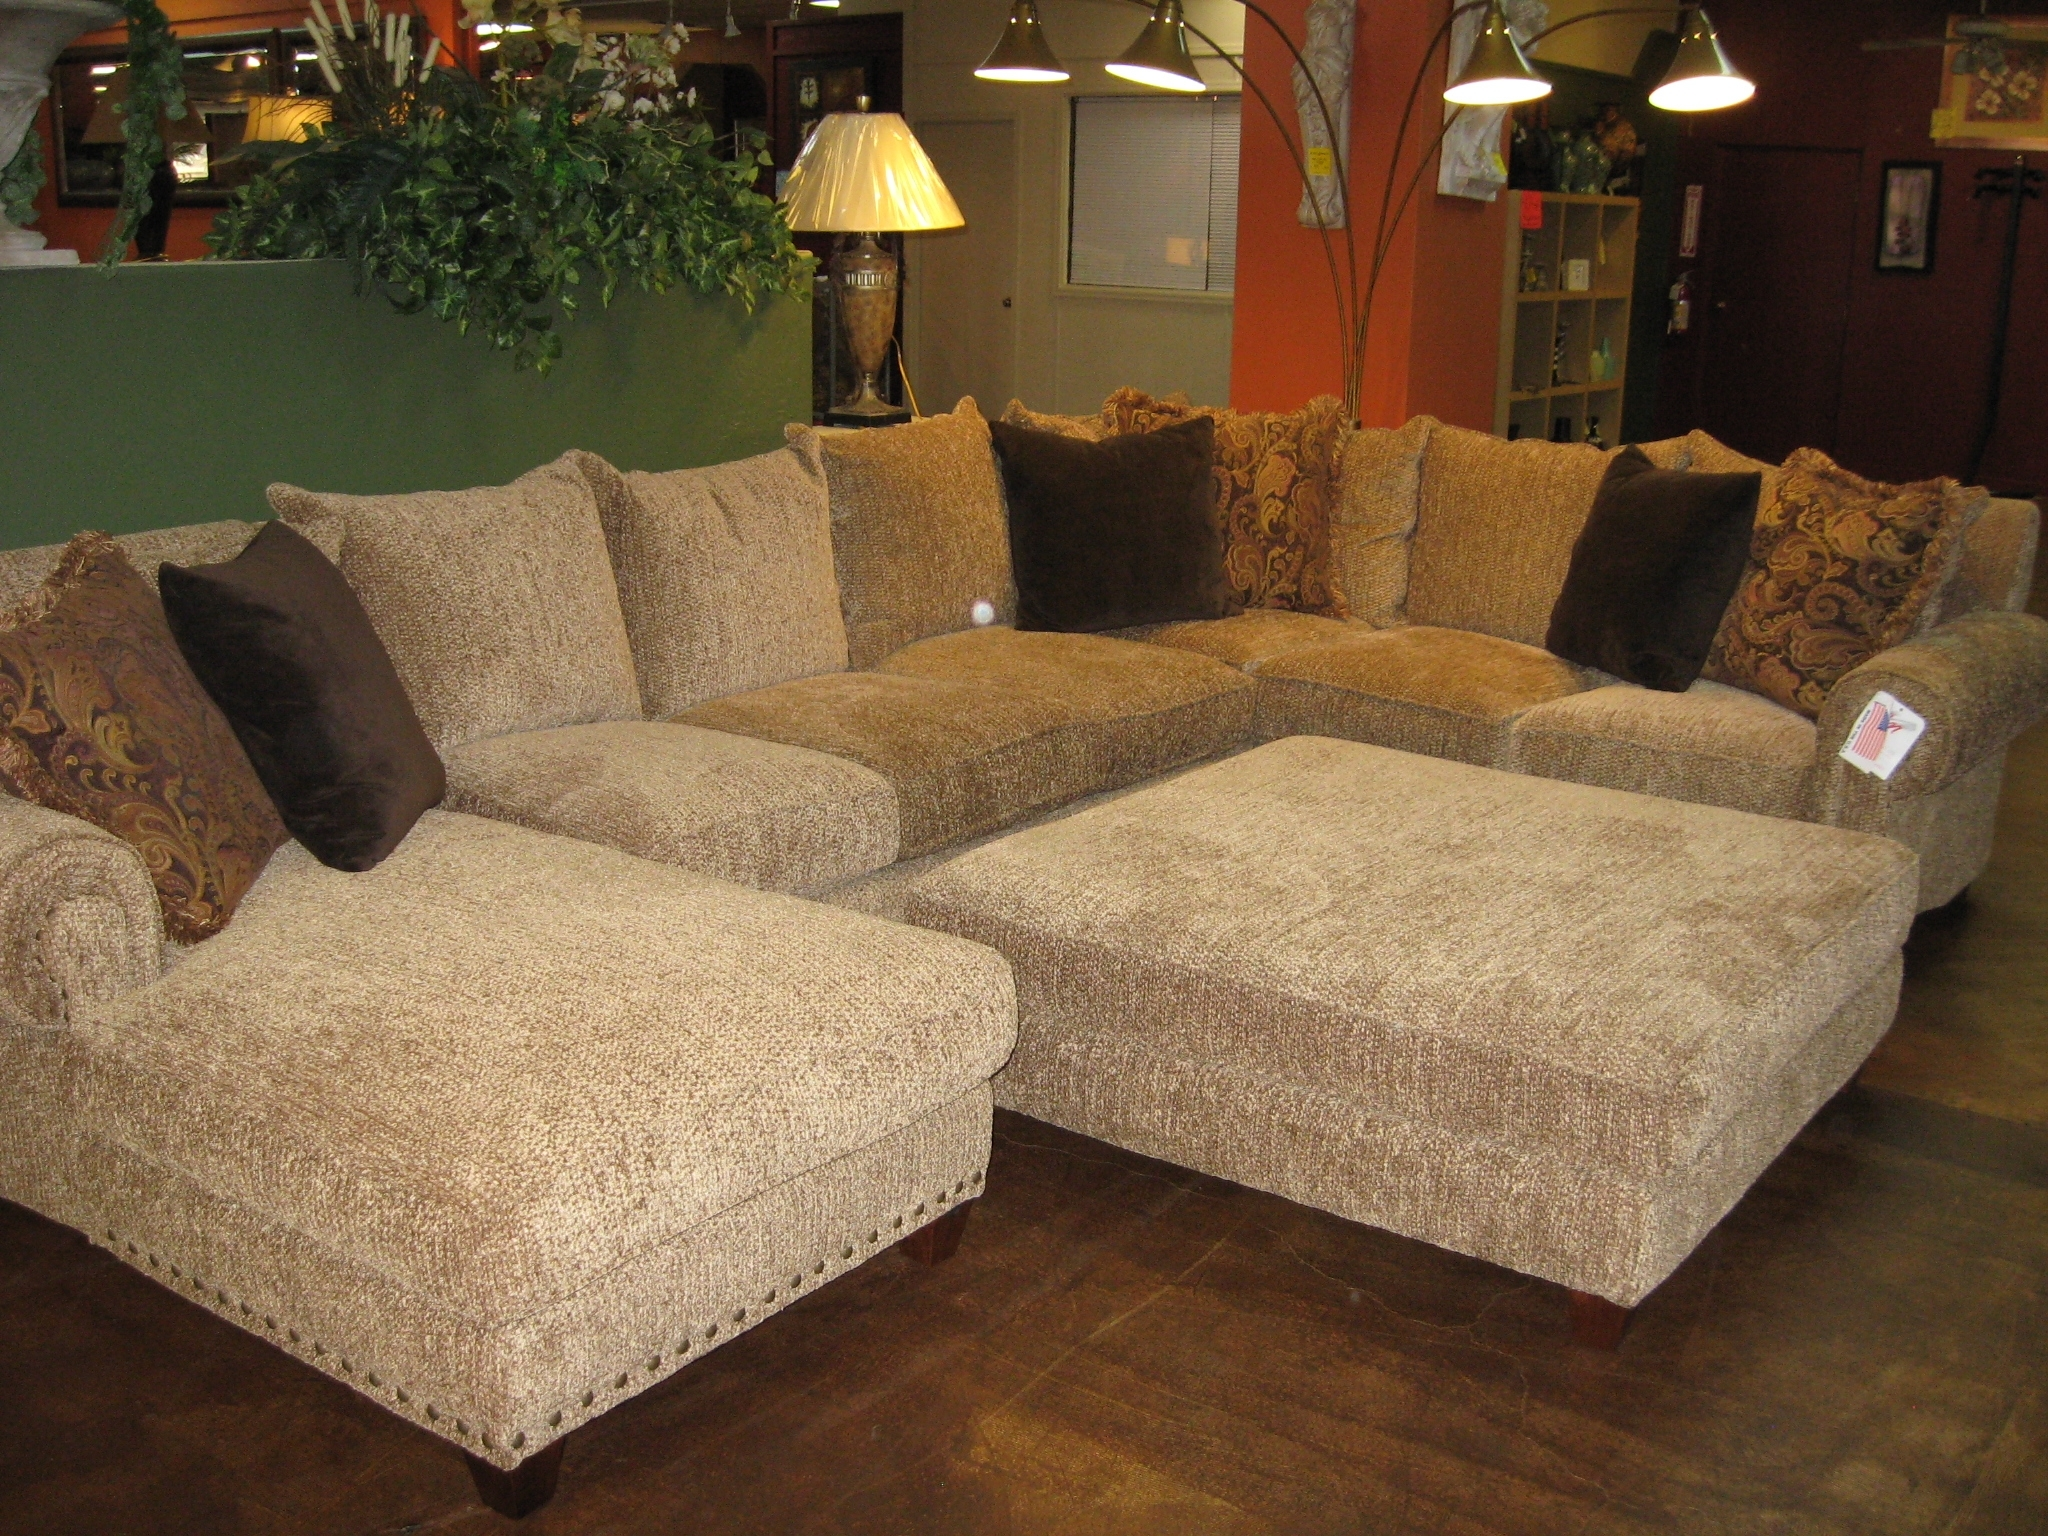 Sectional Sofa With Chaise And Ottoman – Hotelsbacau Within Sofas With Chaise And Ottoman (View 7 of 10)